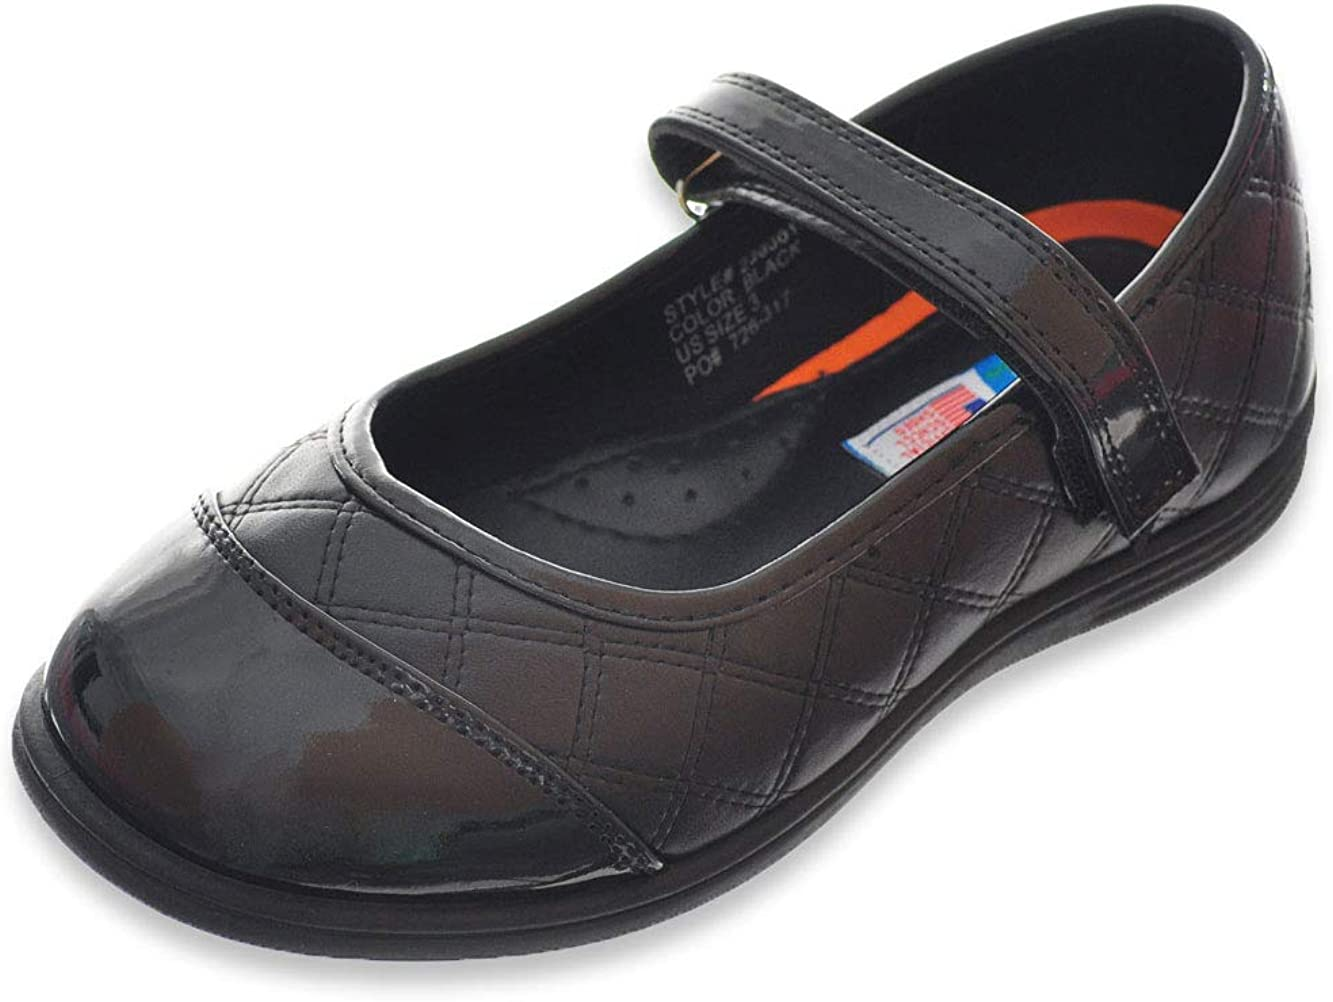 Angels Little Girls Mary Jane Shoes - Black, 4 Youth